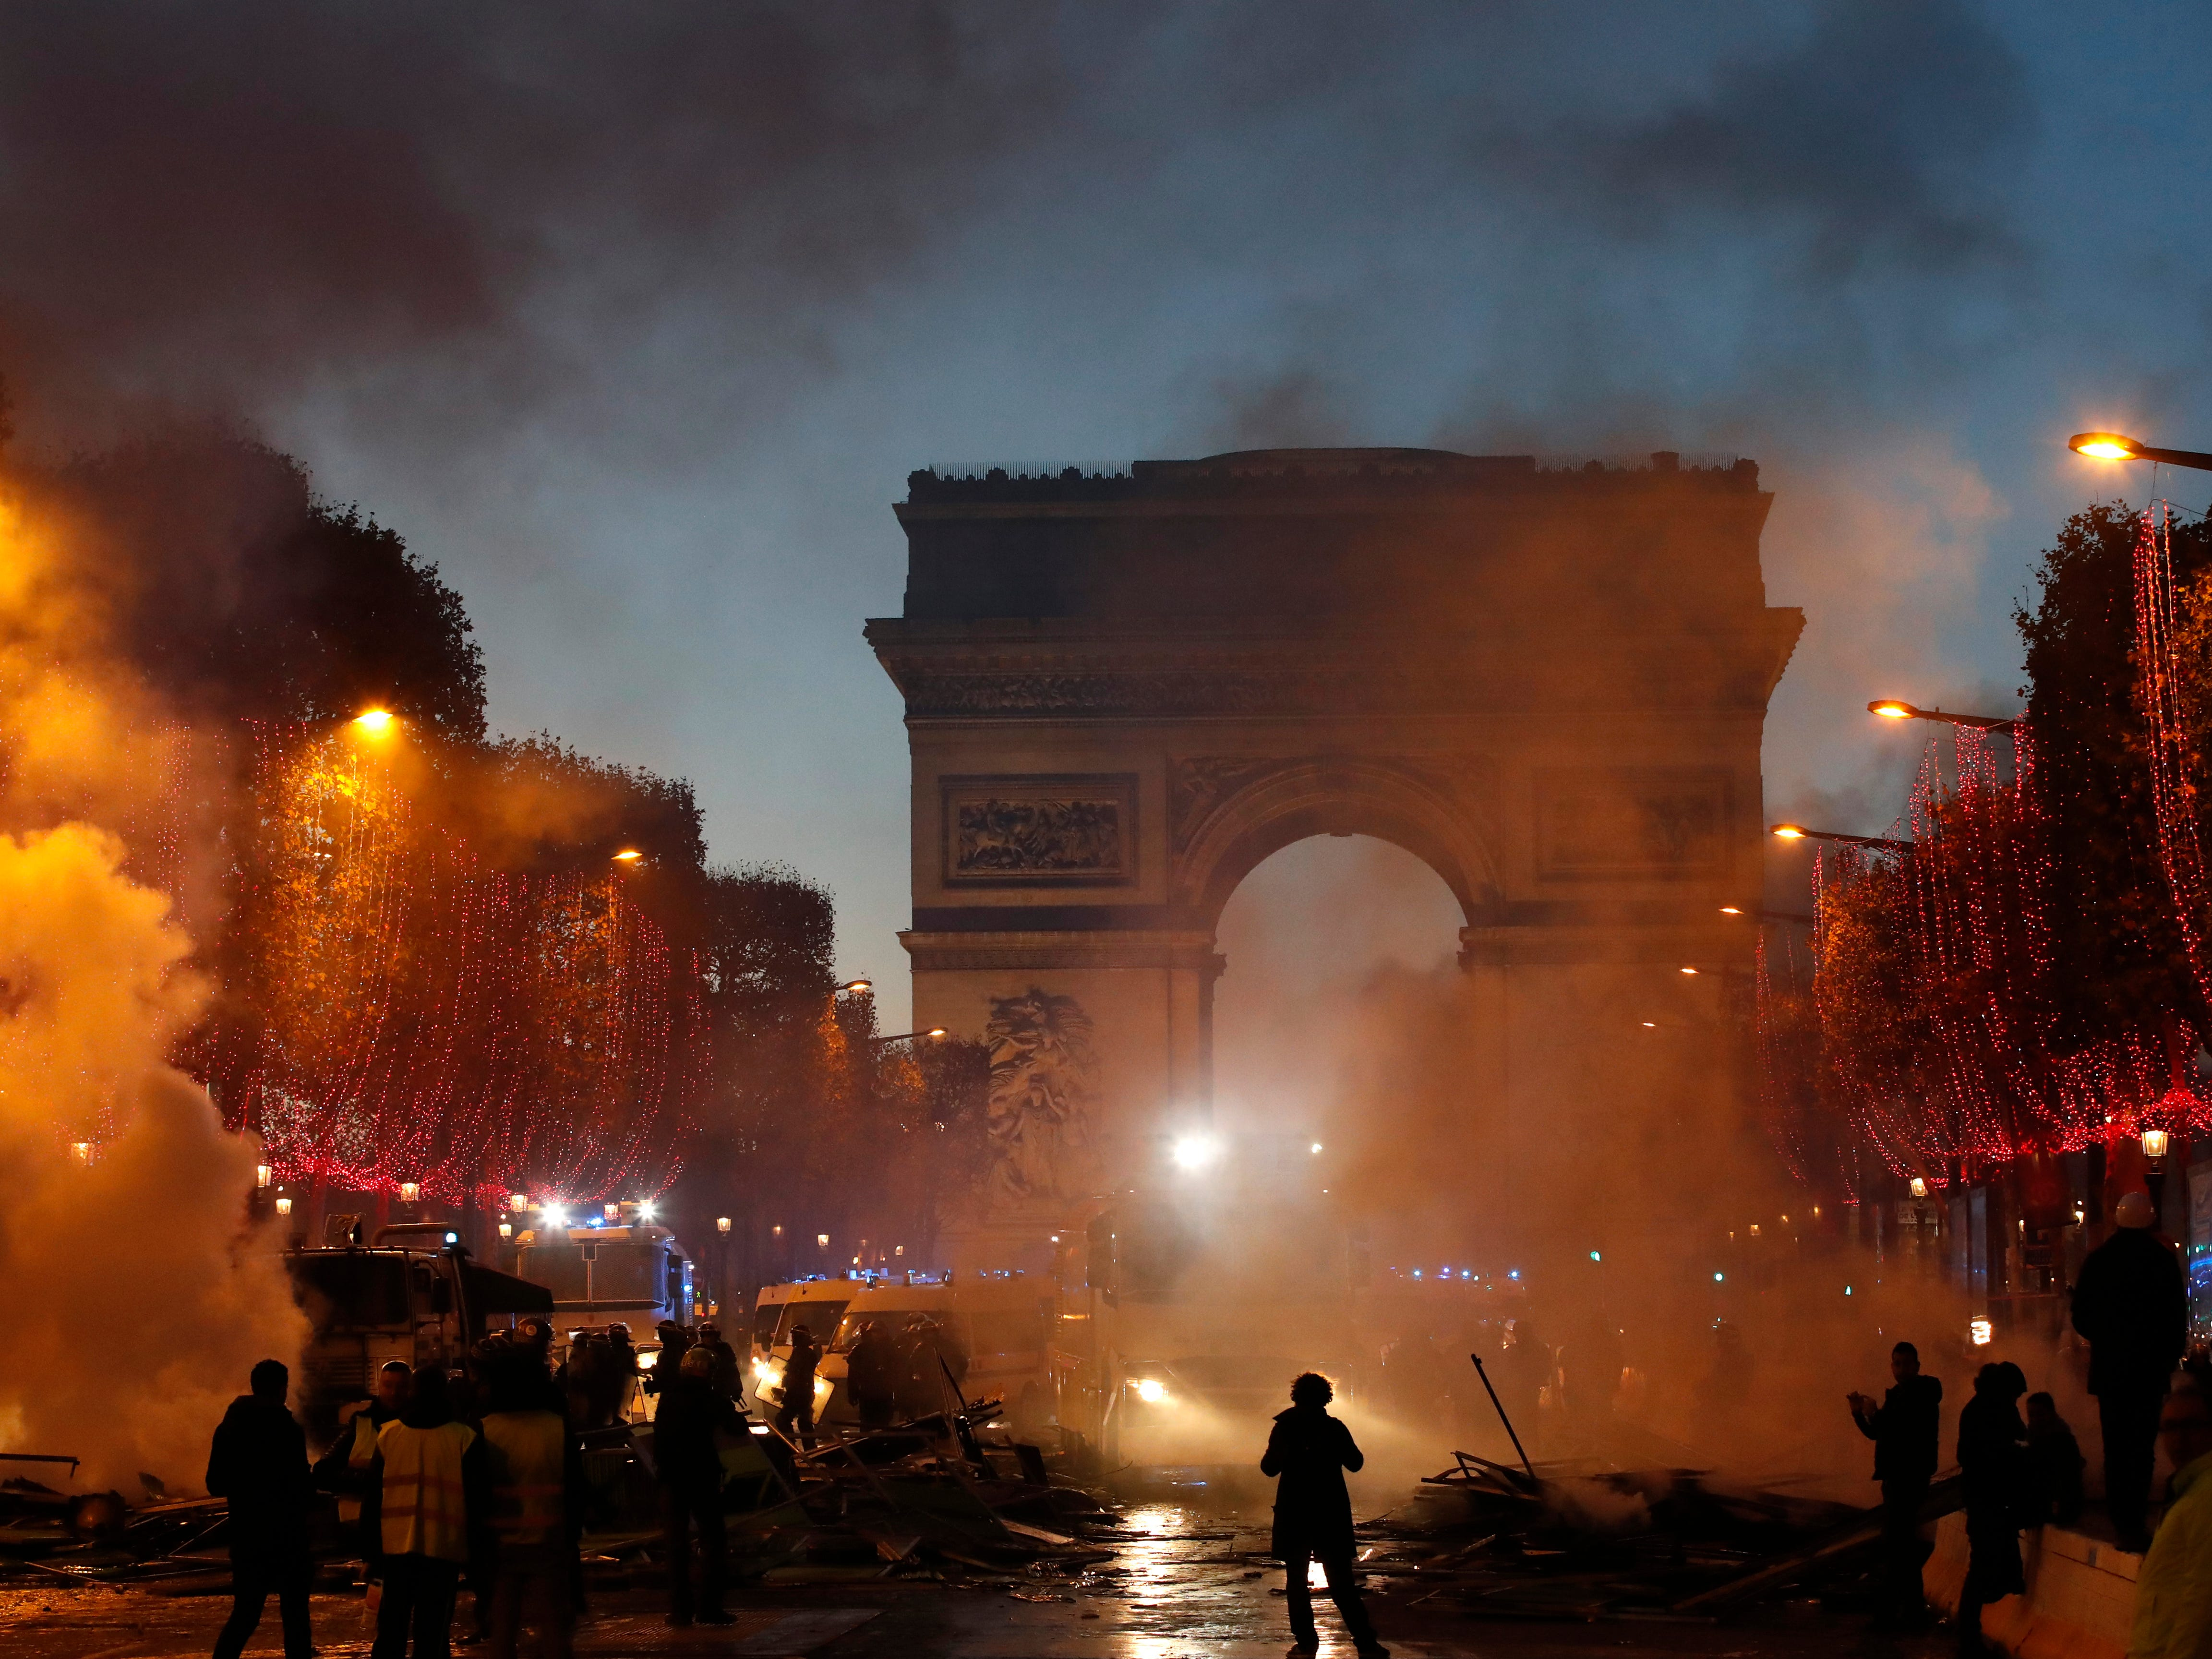 Plumes of smoke are seen near the Arc de Triomphe on the Champs-Elysees avenue decorated with the Christmas lightings during a protest against fuel taxes Saturday, Nov. 24, 2018, in Paris.